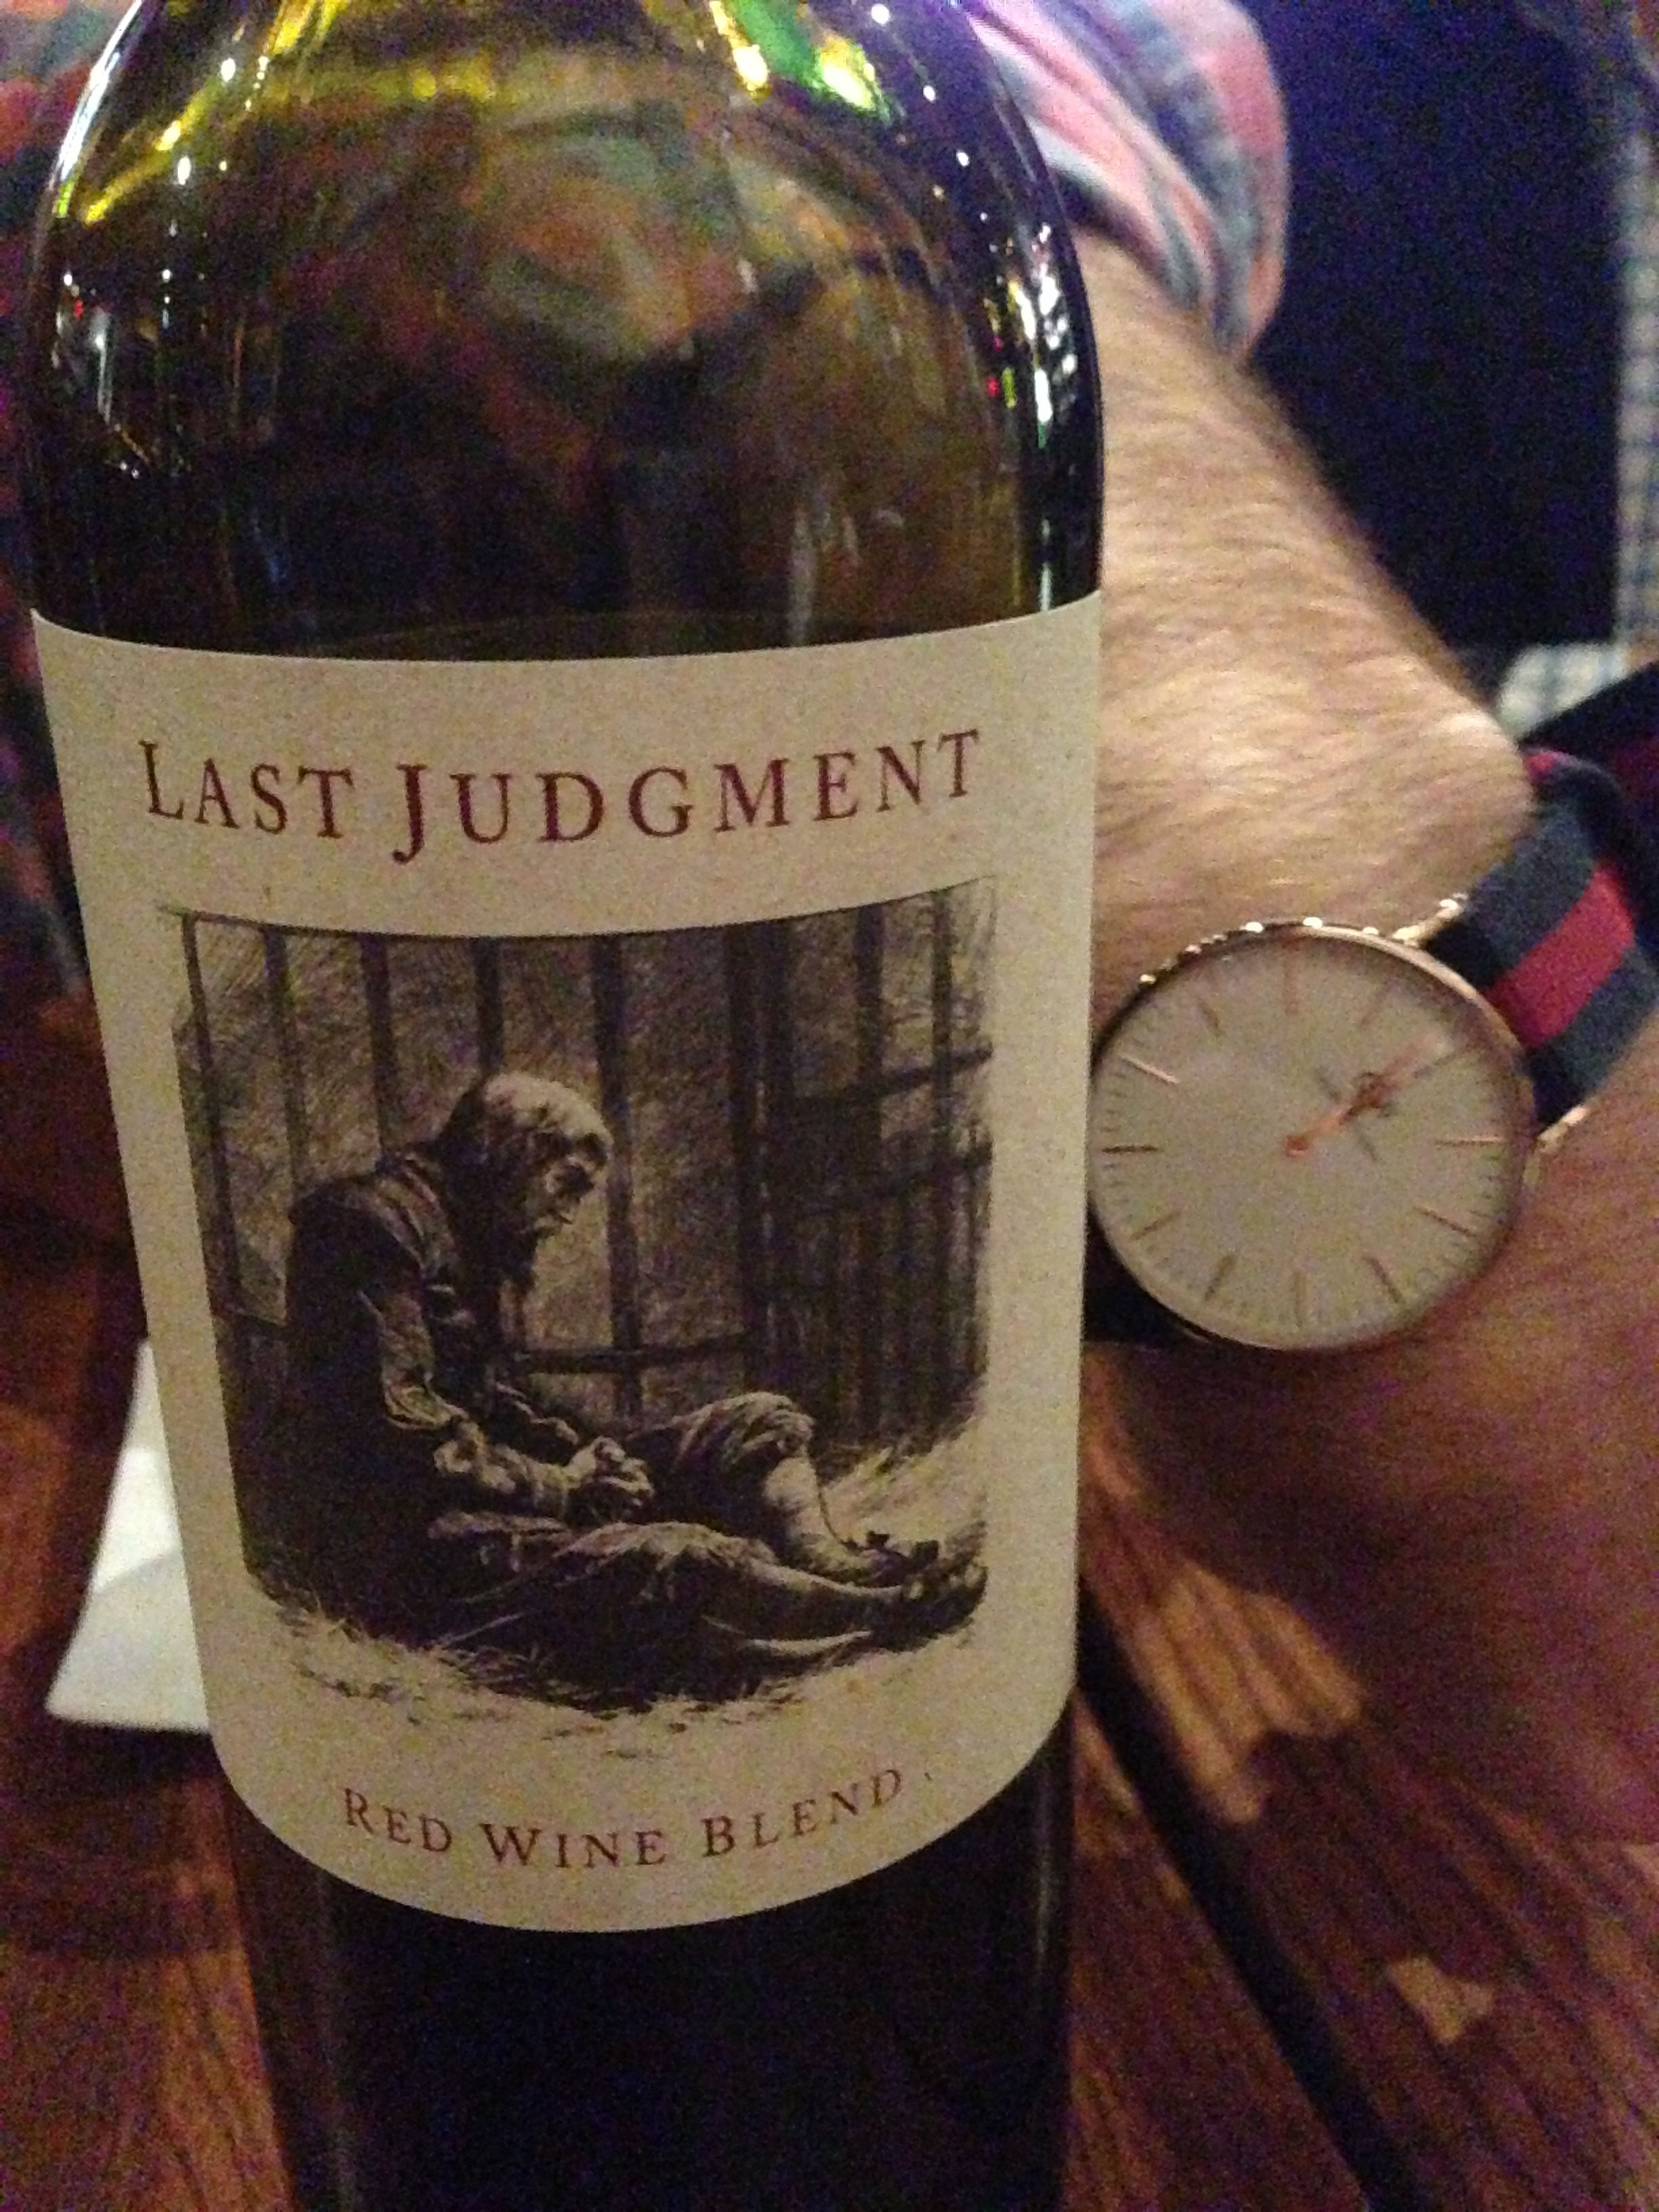 We may or may not have gone to a wine bar afterwards and split a bottle of this delightful red blend. ALSO please notice MainSqueeze's sleek and amazing timepiece. (More to come when I publish the Man Style Guide)